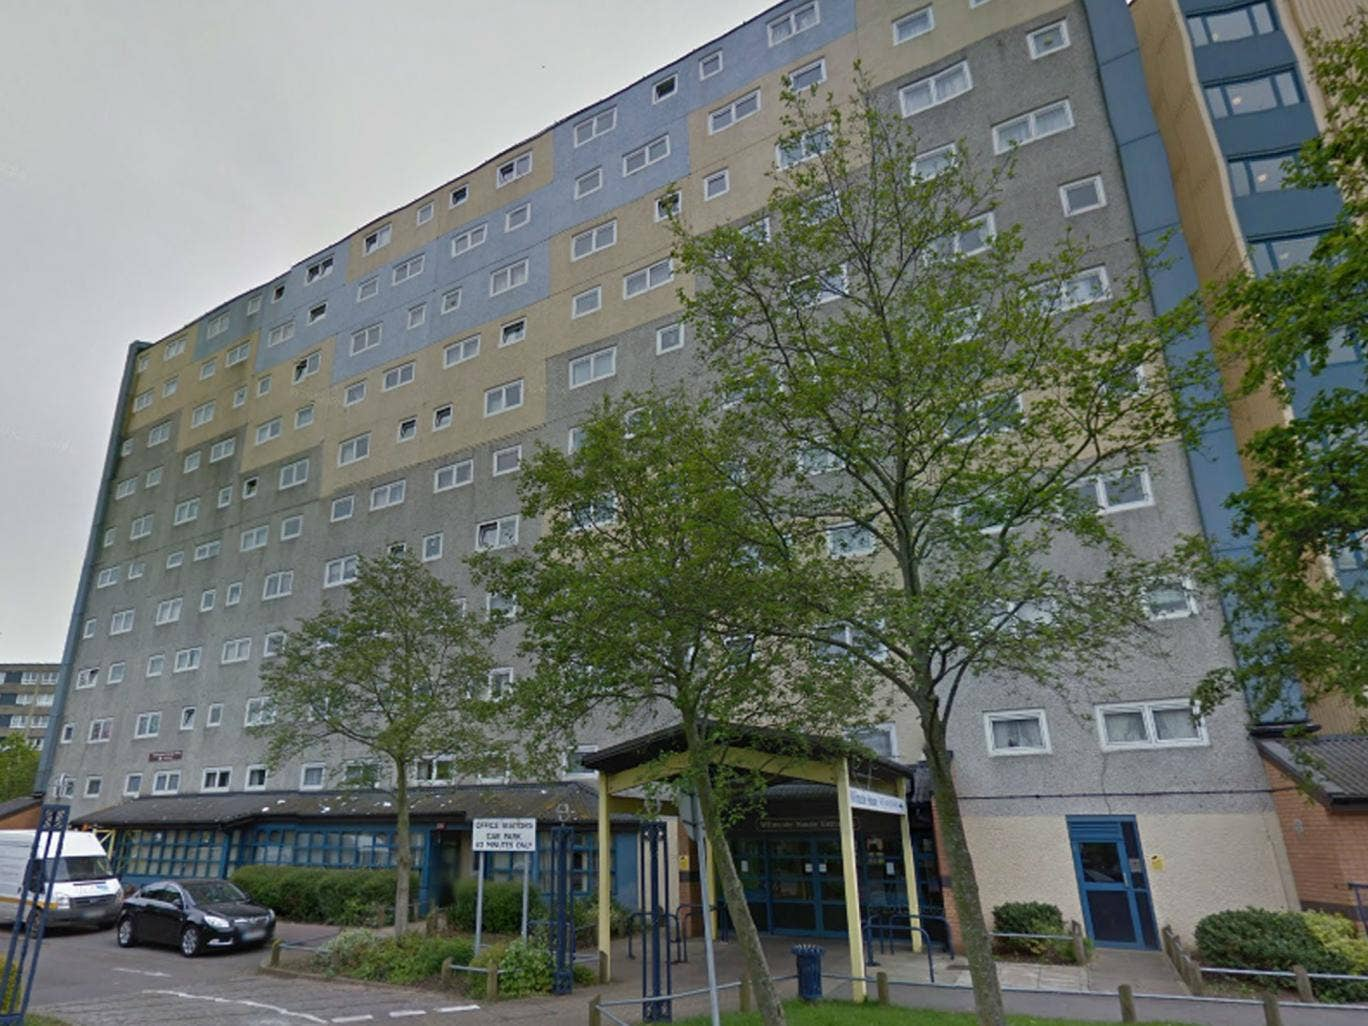 The body of Louise Brough was found in her flat in Wilmcote House, Tyseley Road, Portsmouth